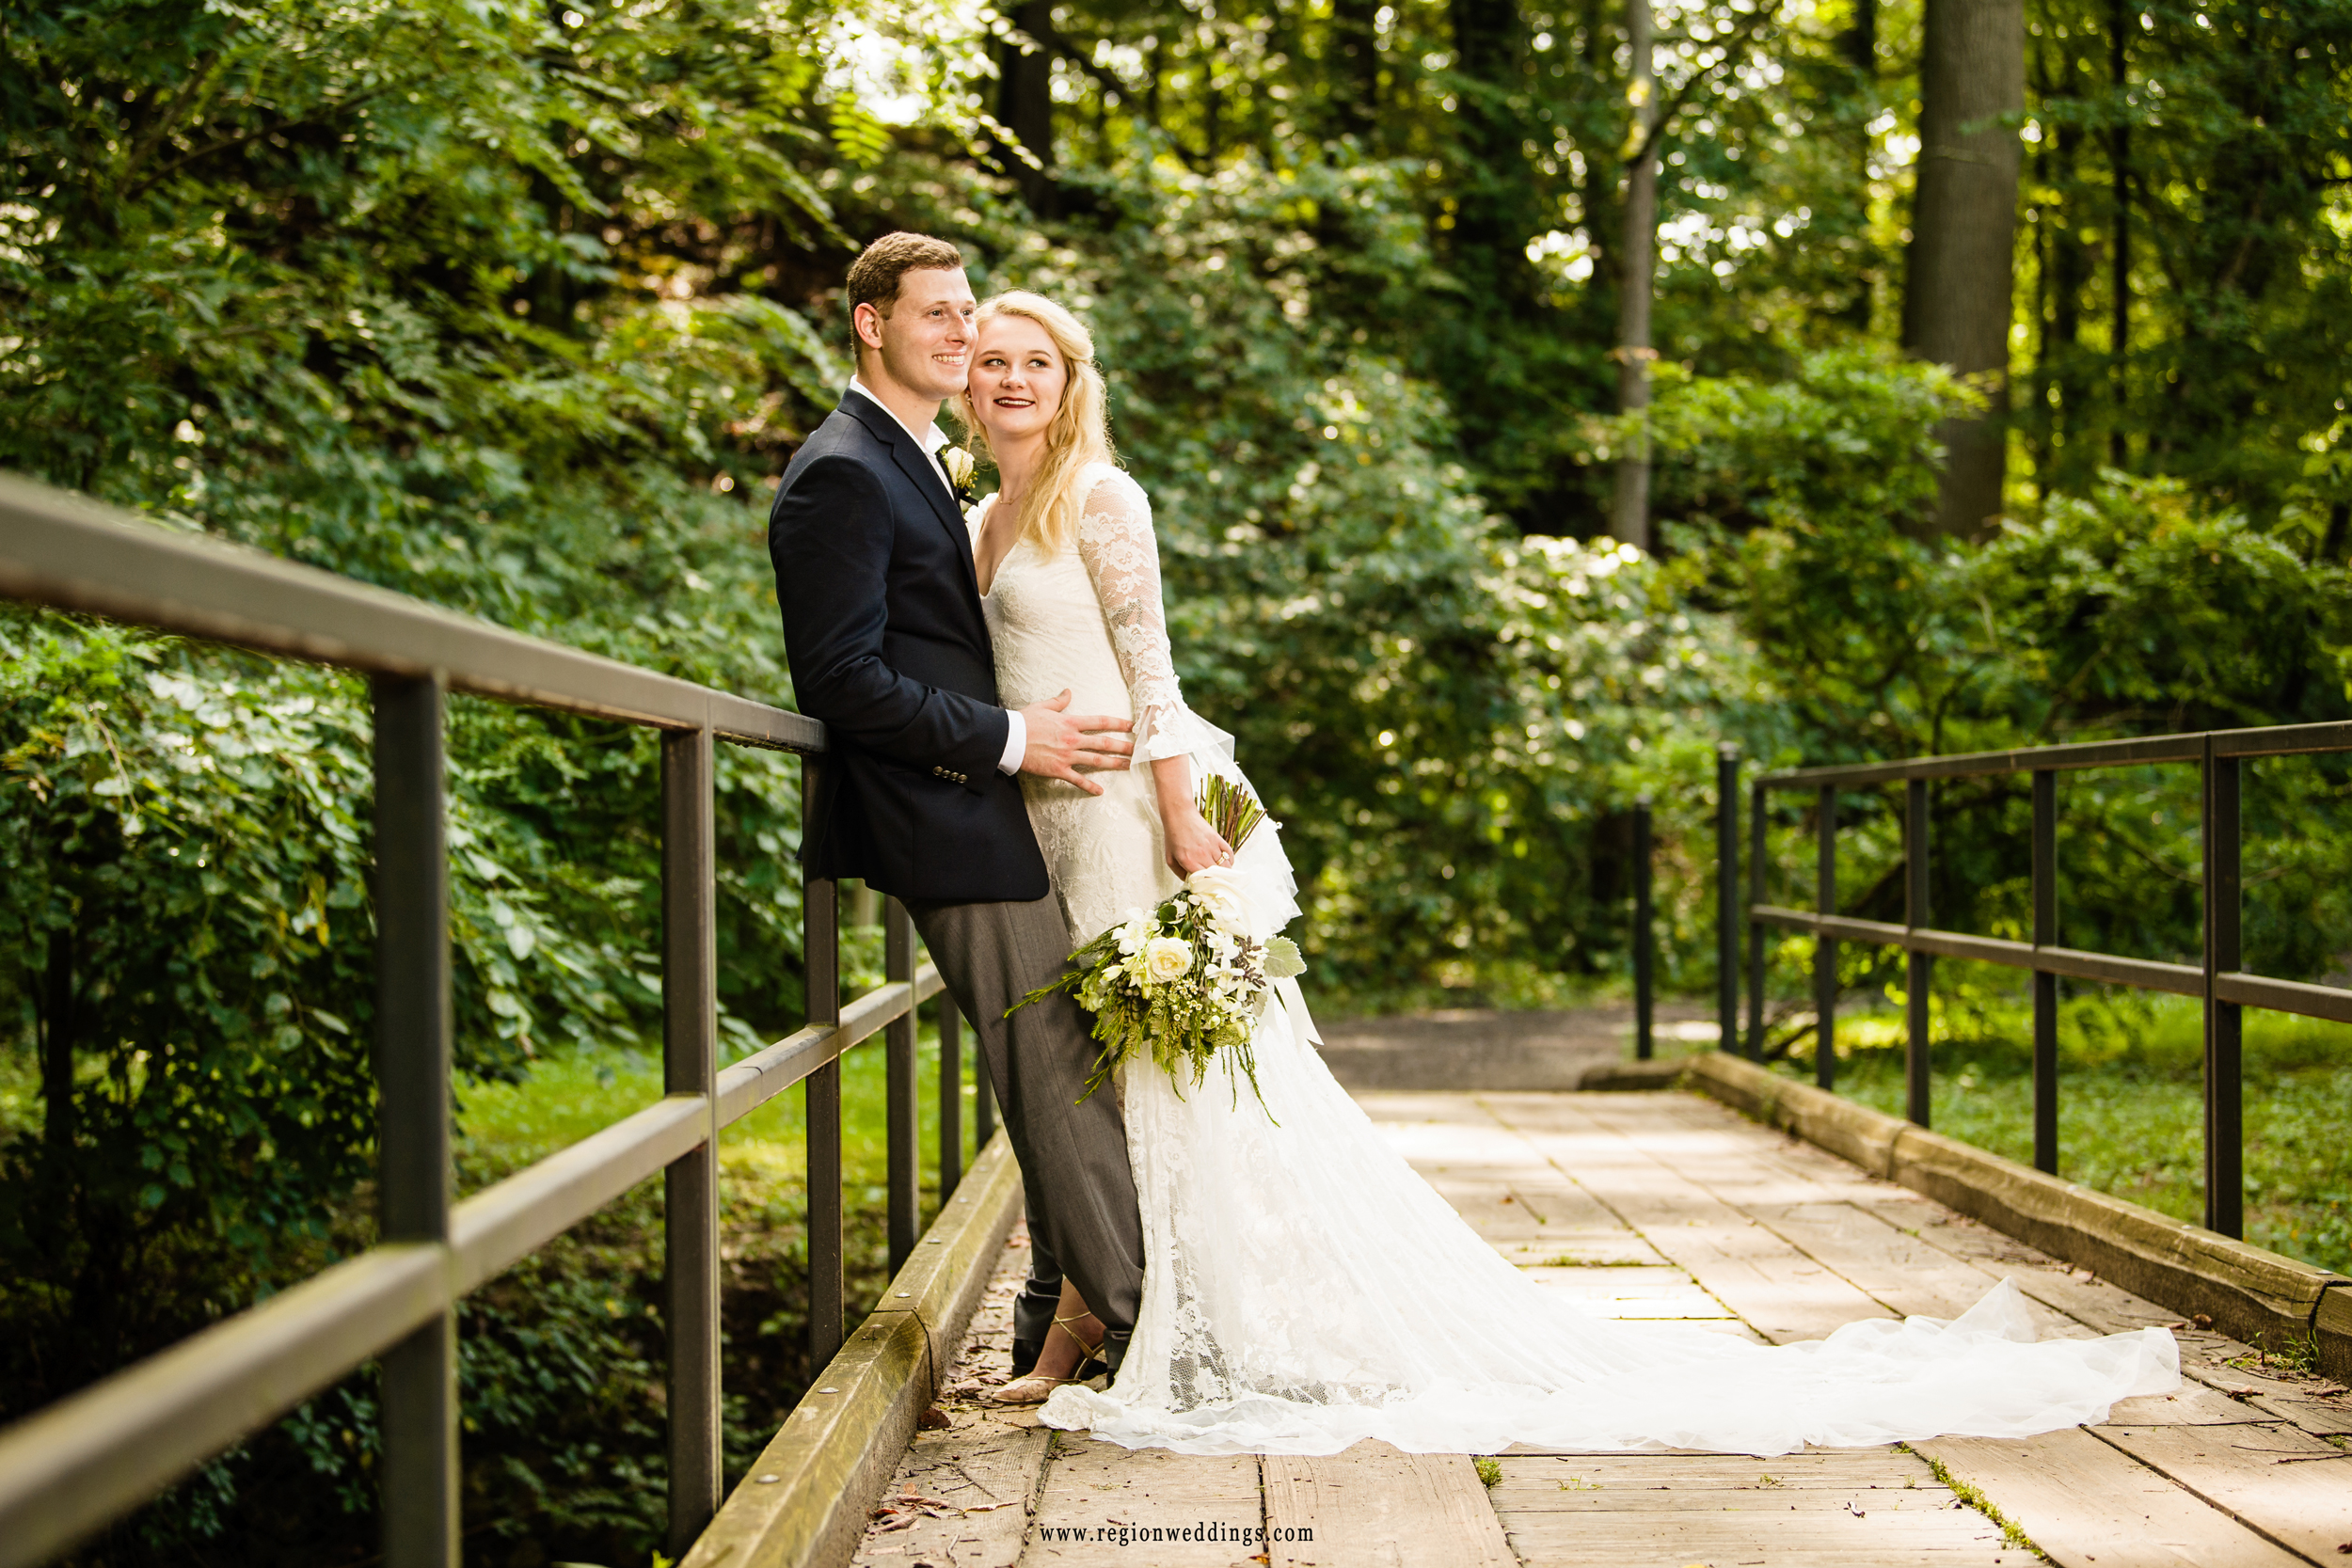 Bride and groom gaze off into the distance on a rustic bridge.